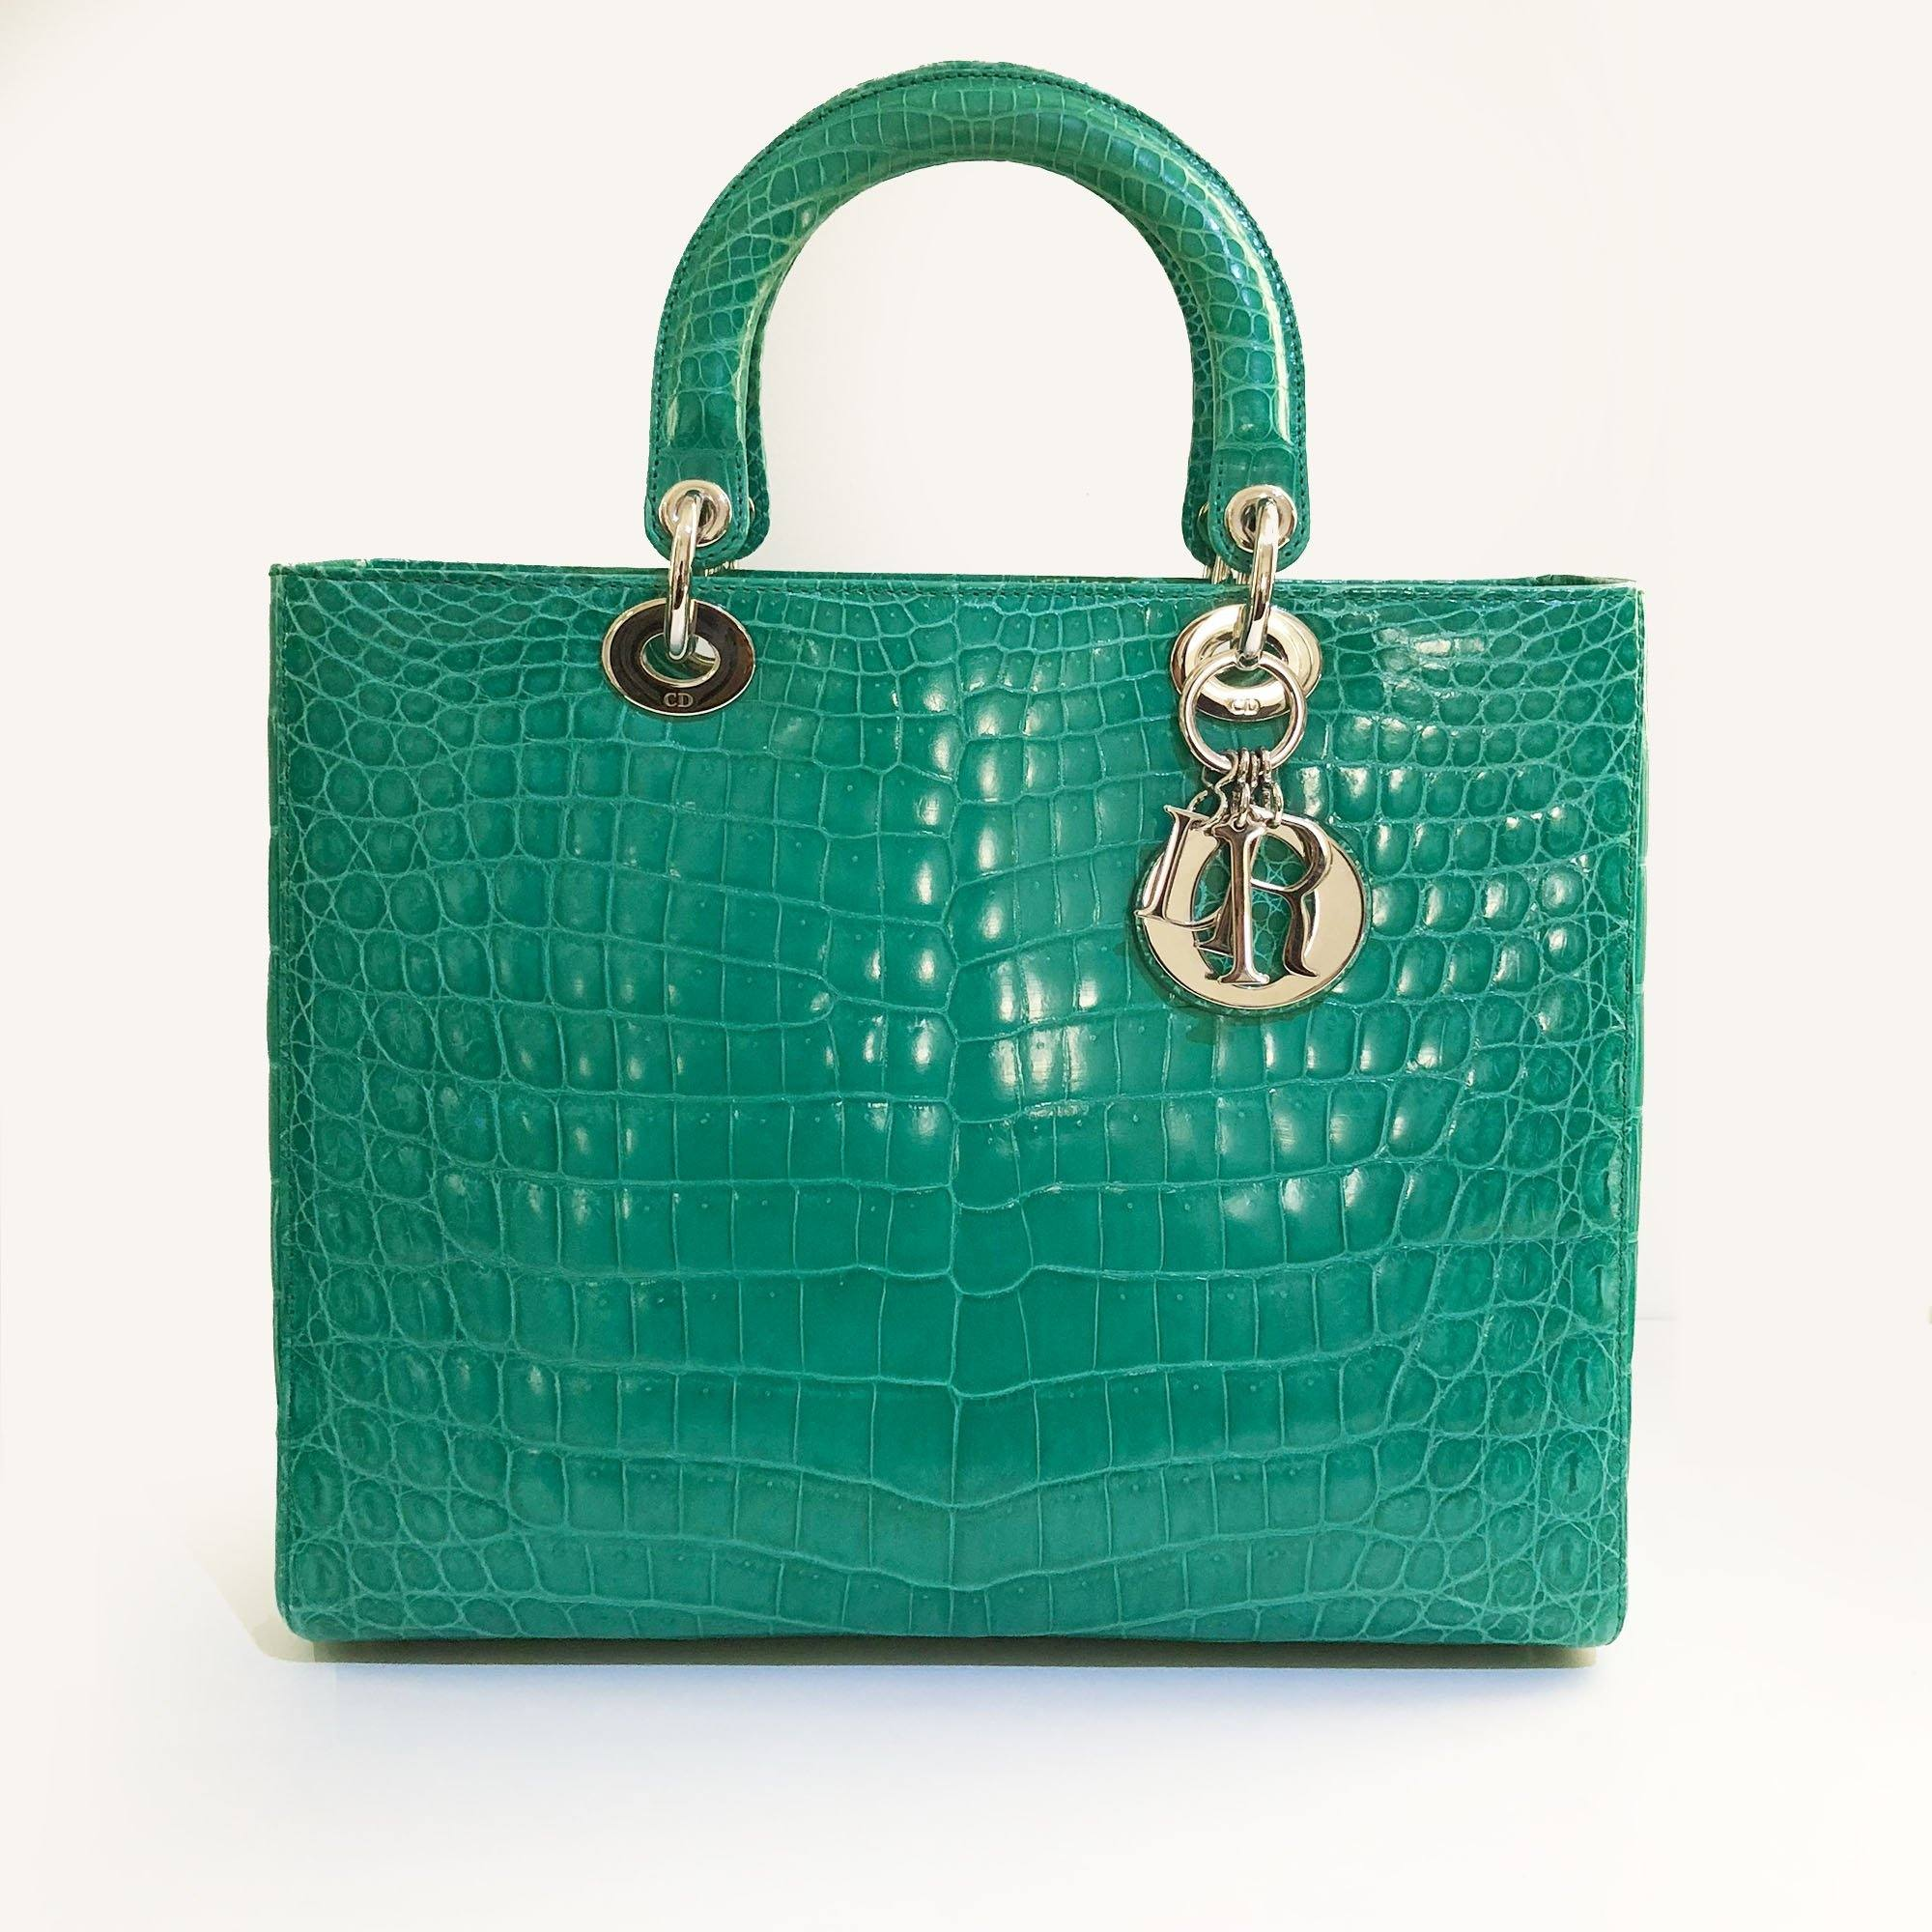 20709ca05e7f Christian Dior Large Crocodile Green Lady Dior Bag – Garderobe